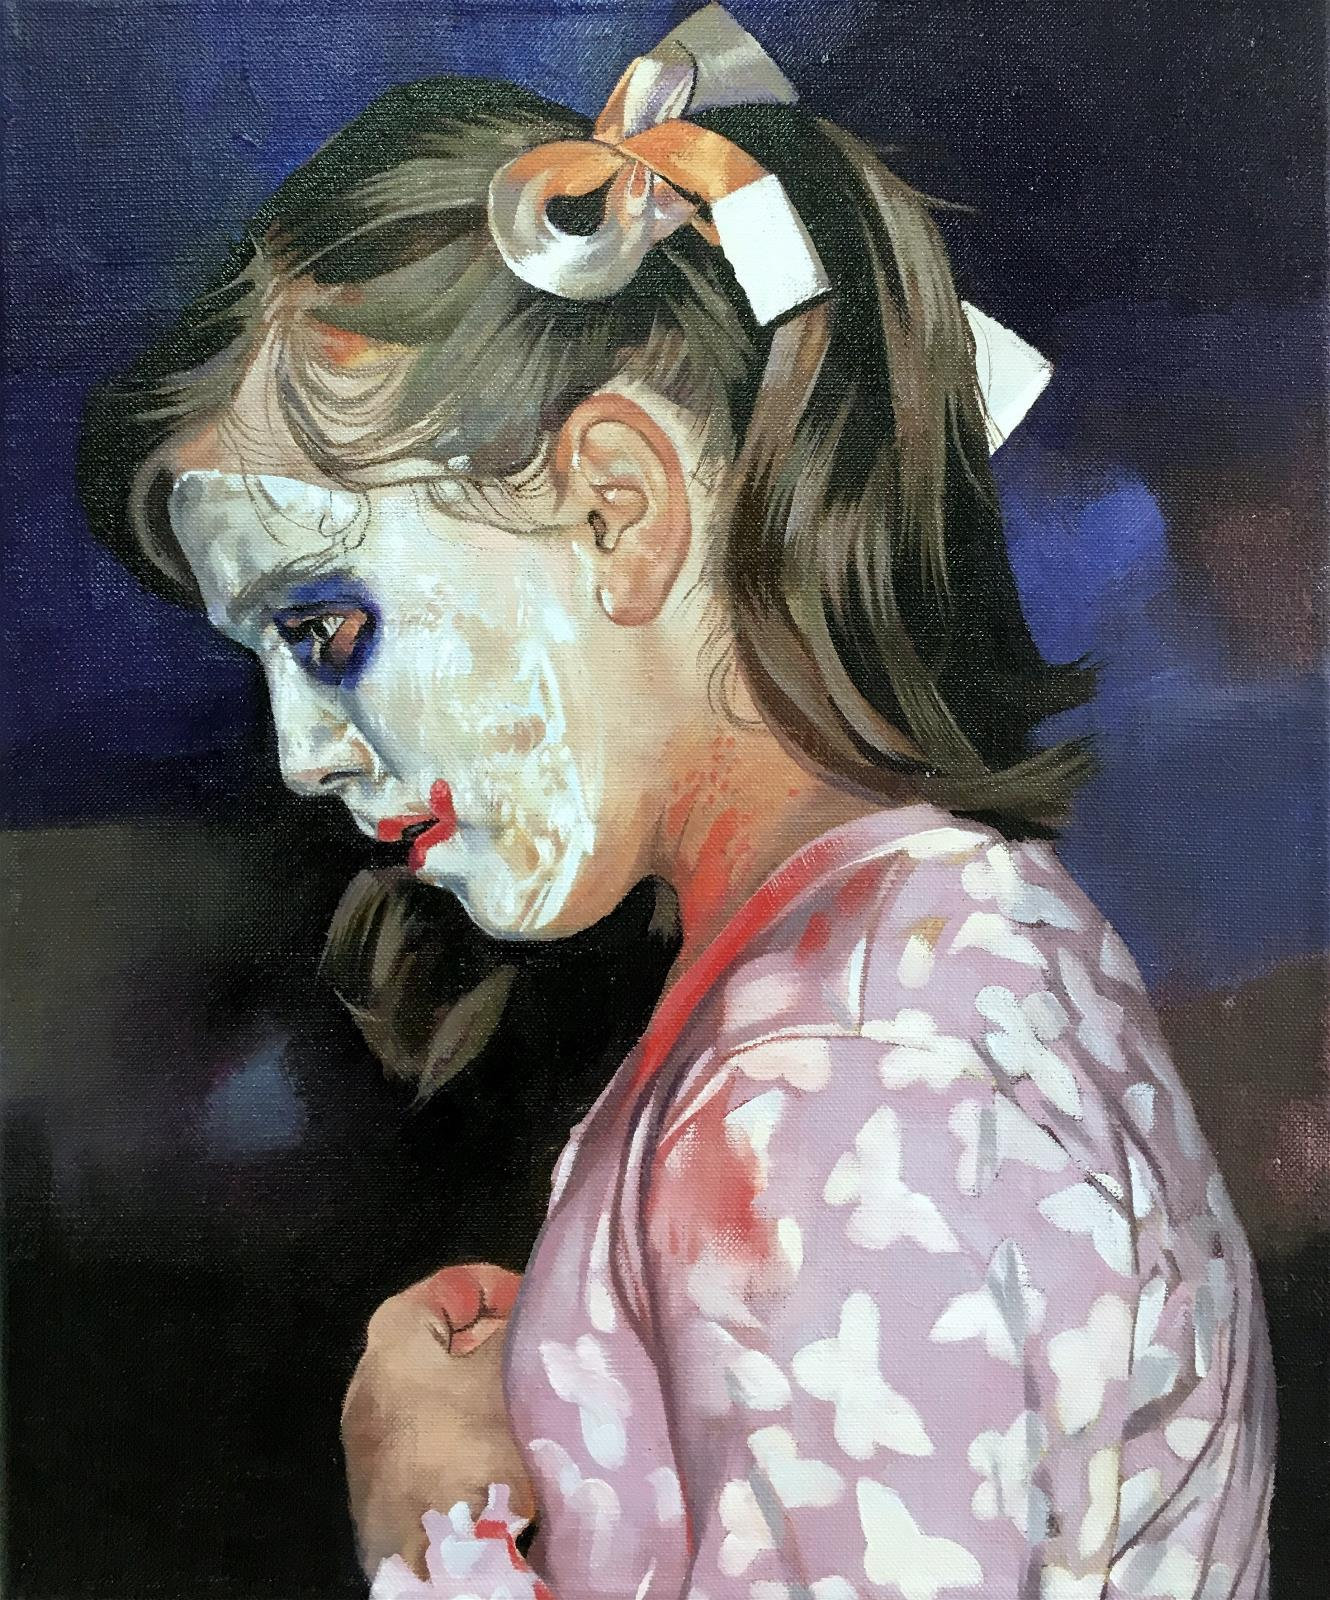 Behind the Clown Paint